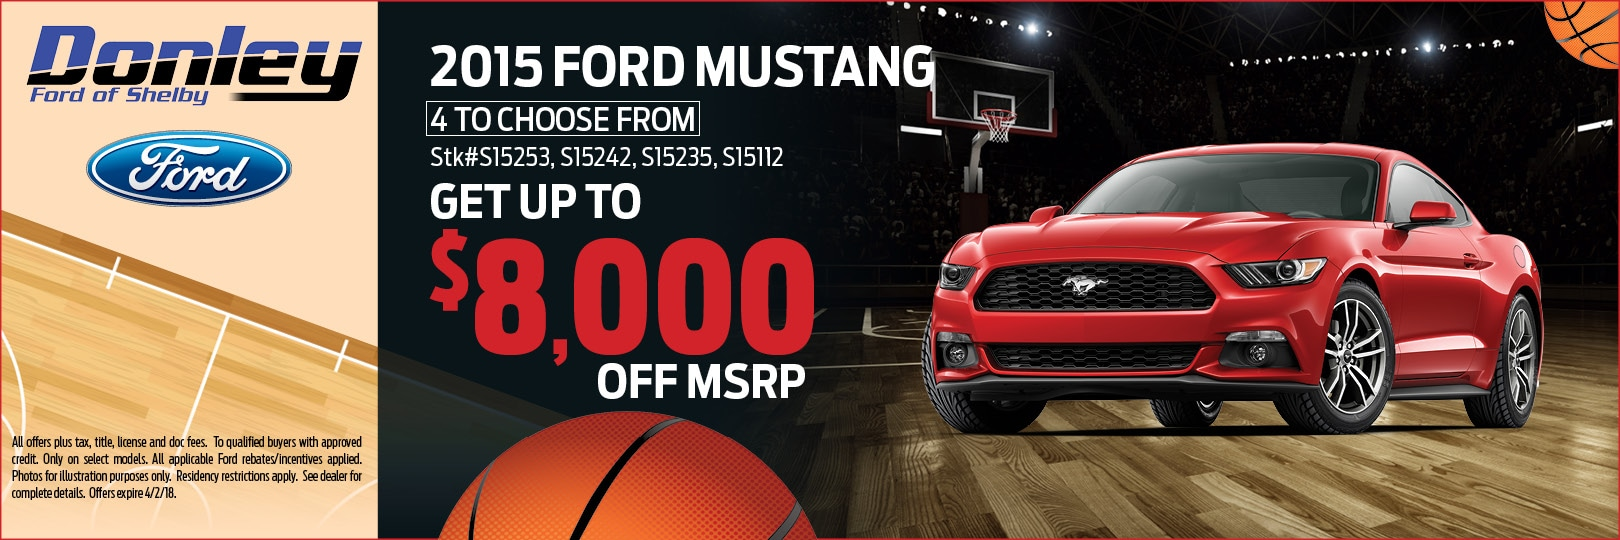 2015 Ford Mustang in Shelby, OH